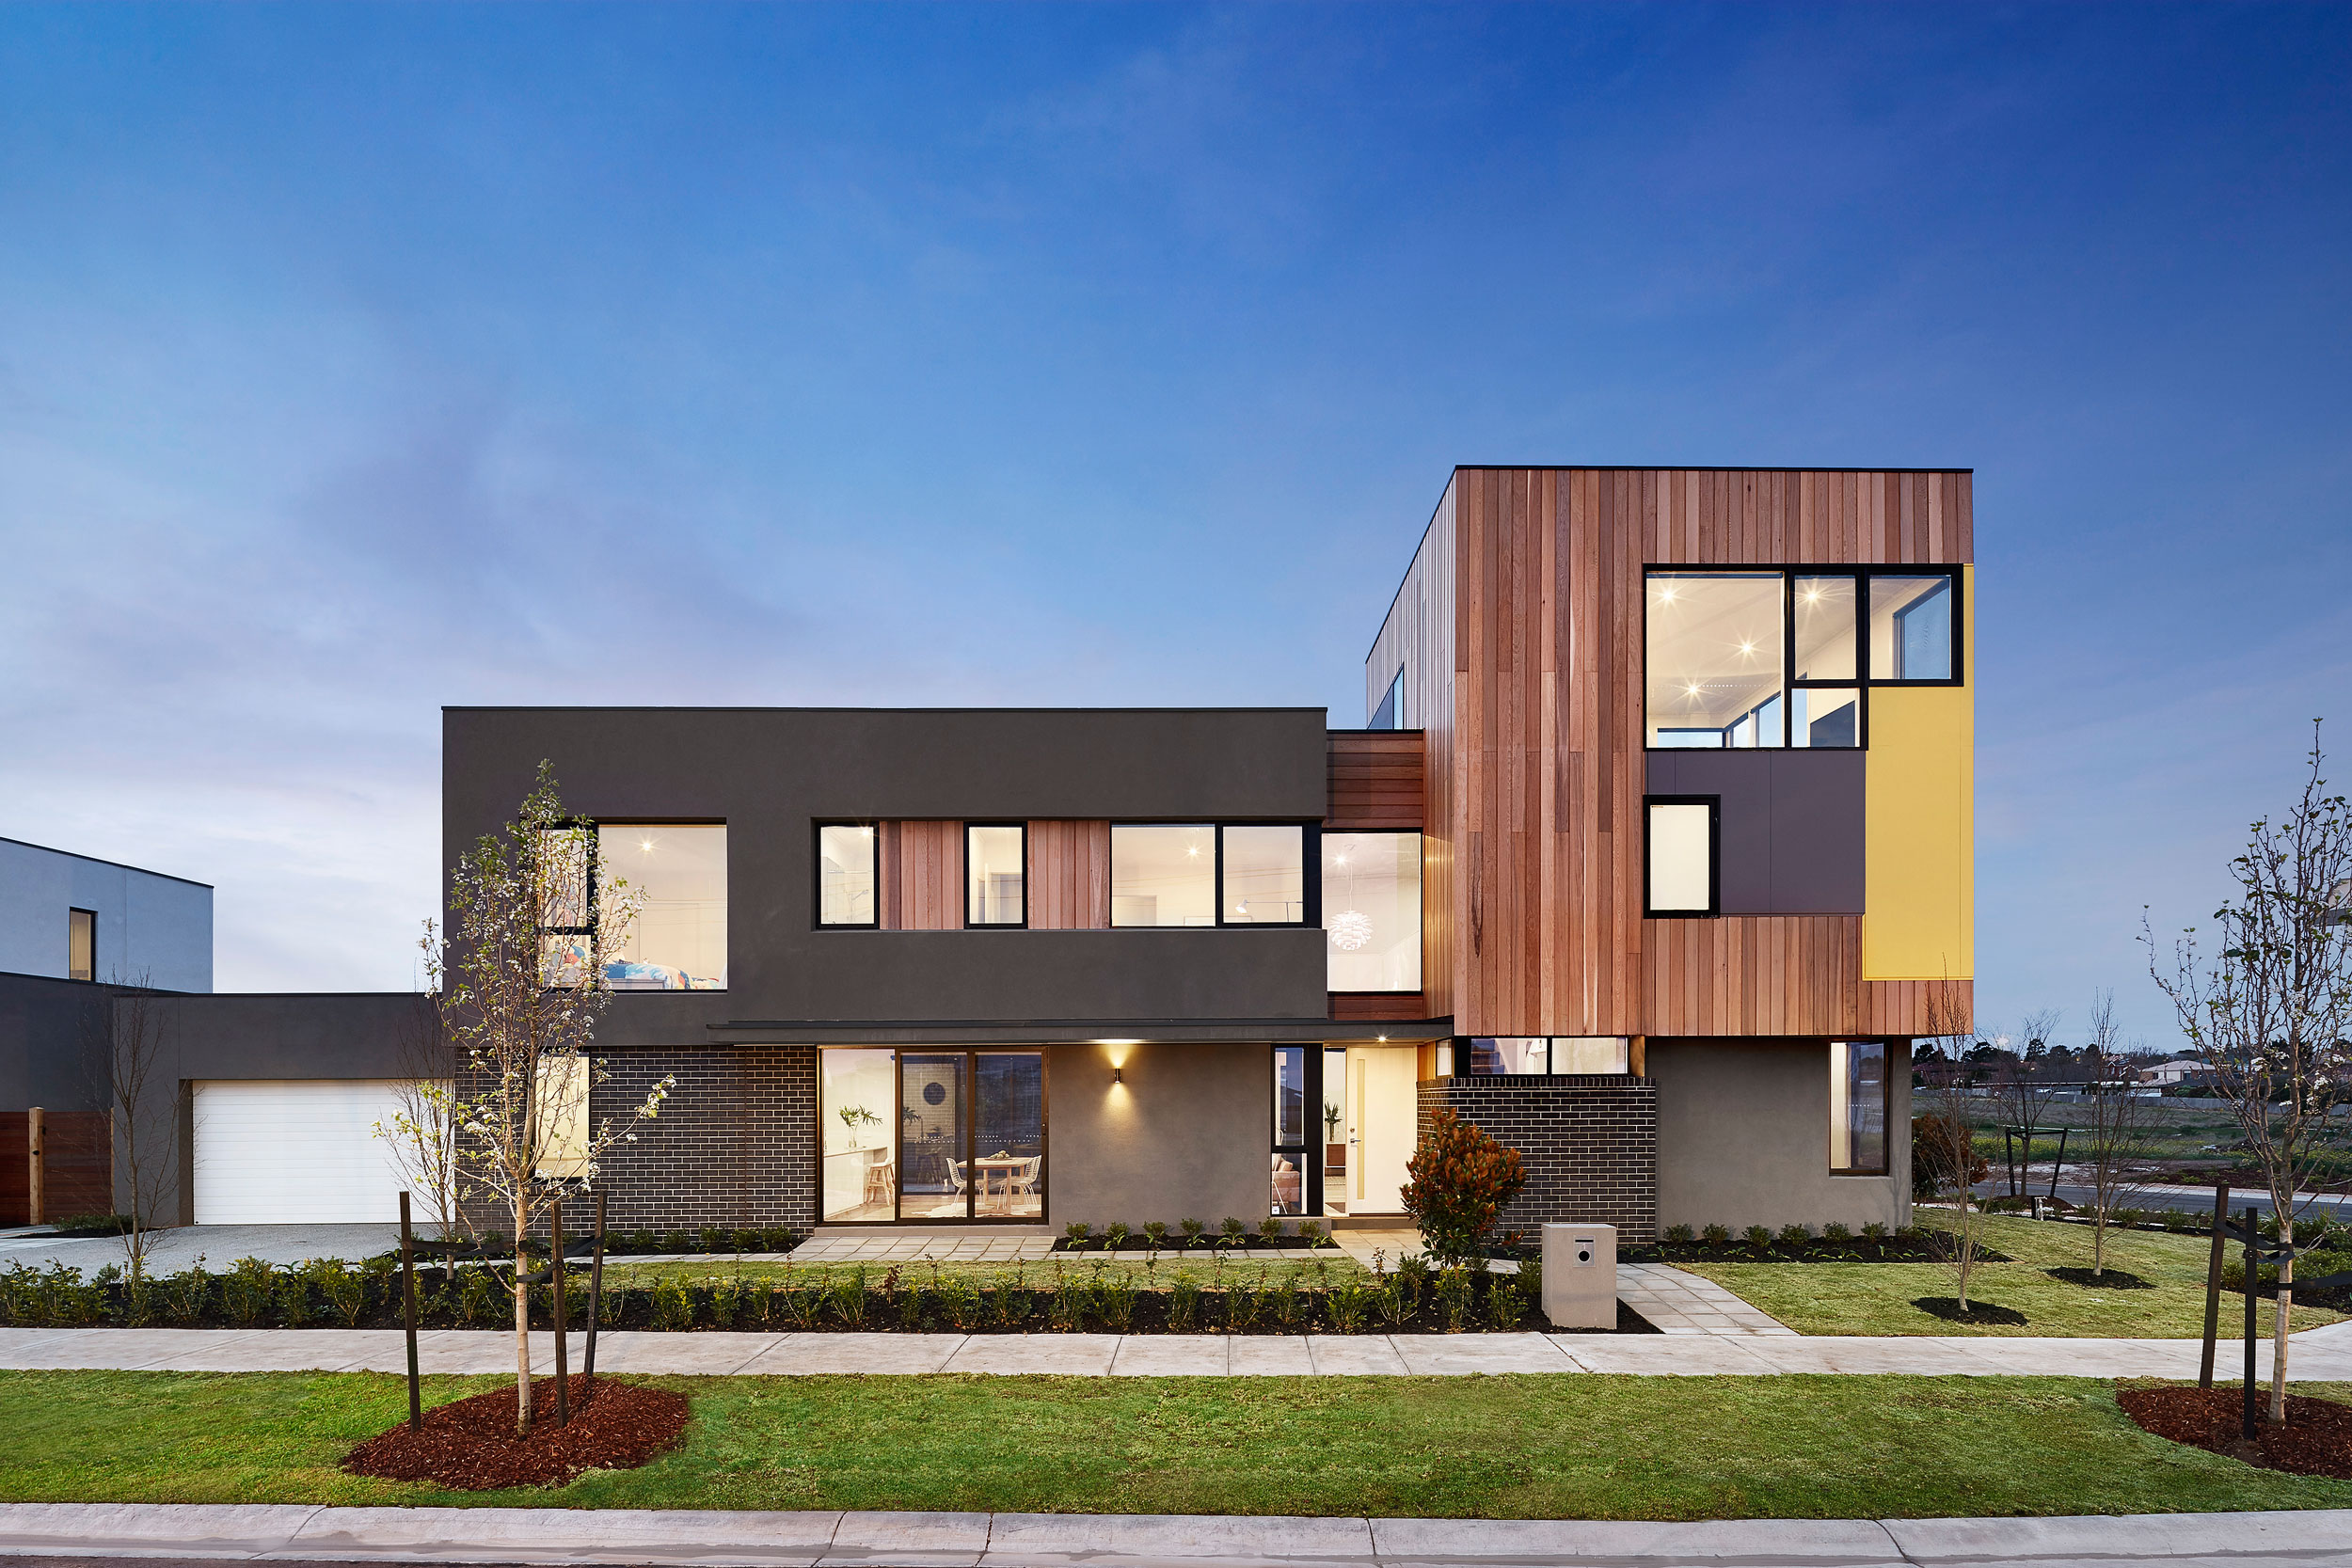 Sarah_Anderson_Photography_Property_Exterior_Architecture